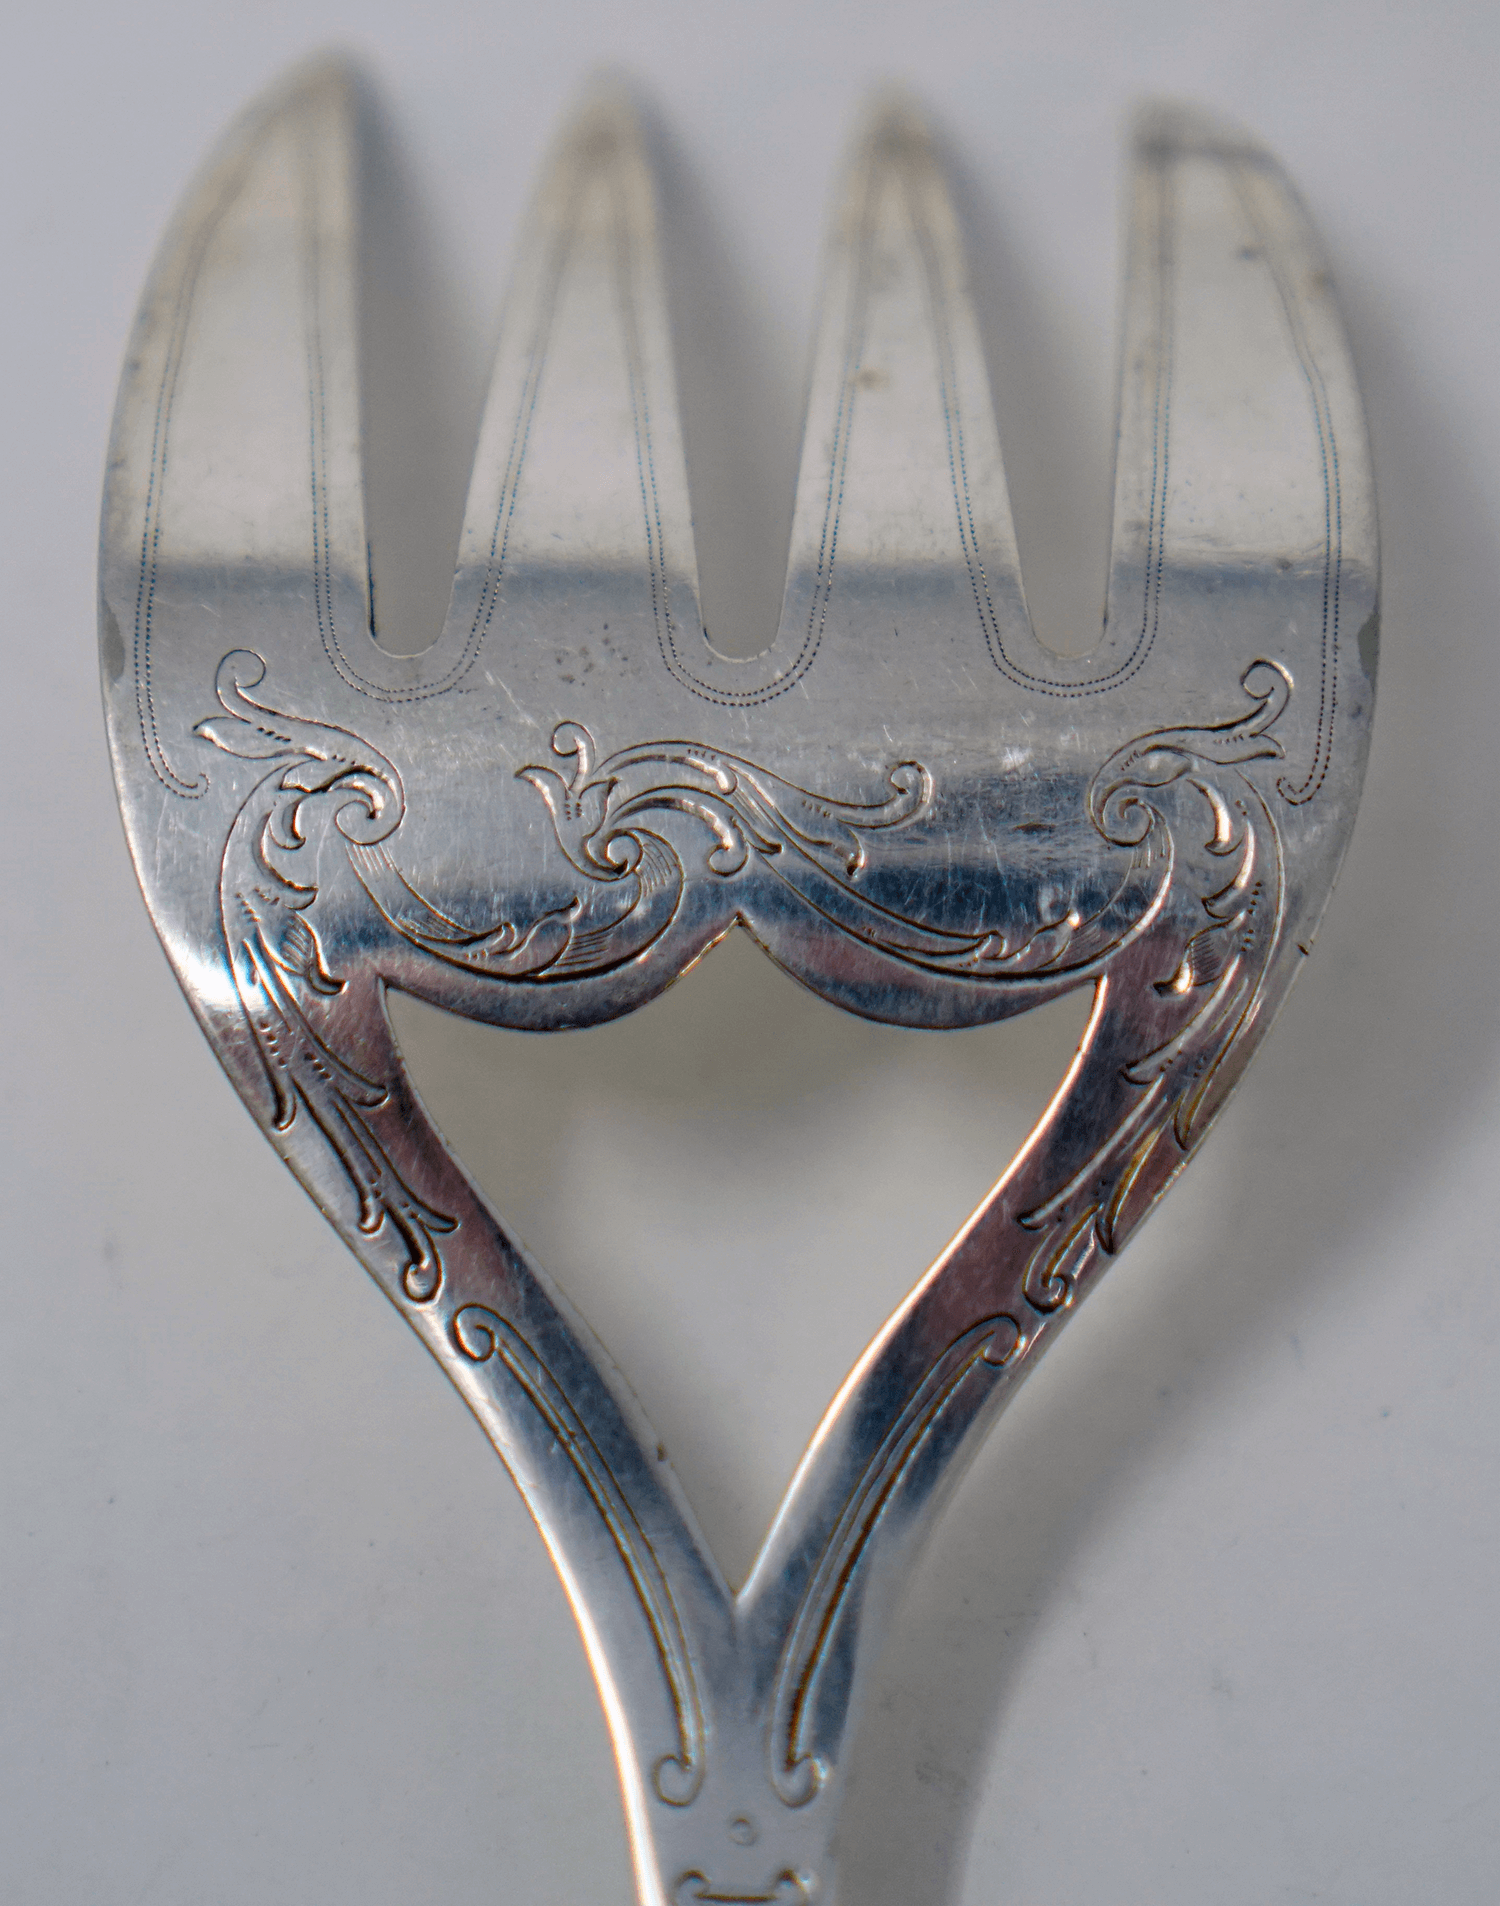 Christofle Silver Plated Antique Fish Servers